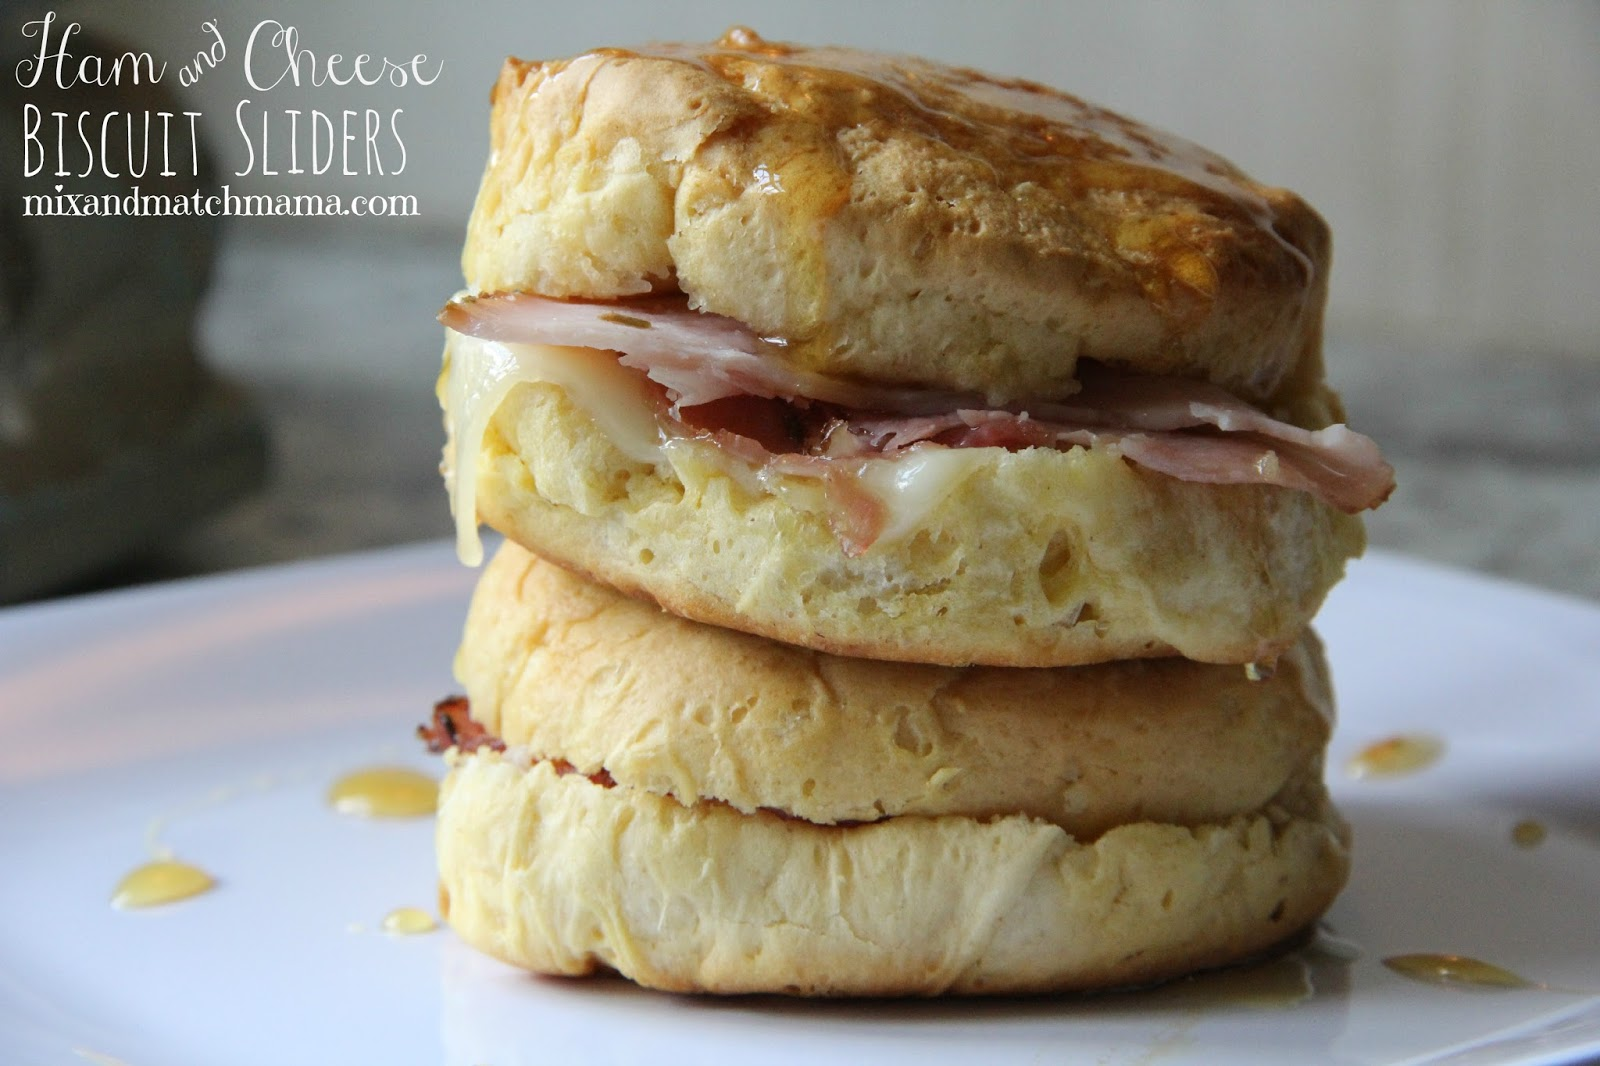 Mix and Match Mama: Ham and Cheese Biscuit Sliders